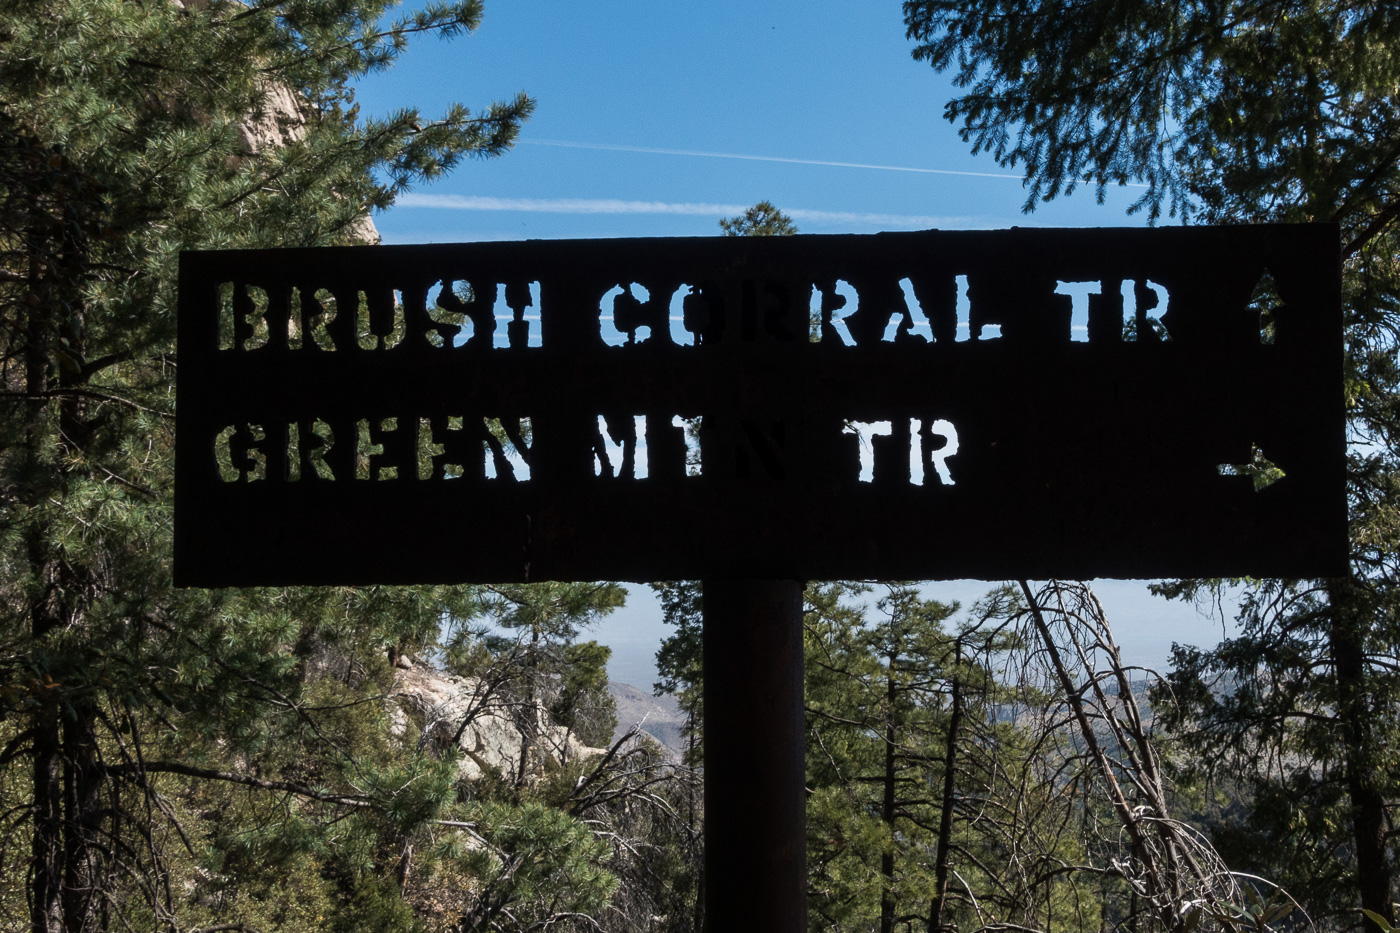 At the junction of the Brush Corral and Green Mountain Trails. April 2017.